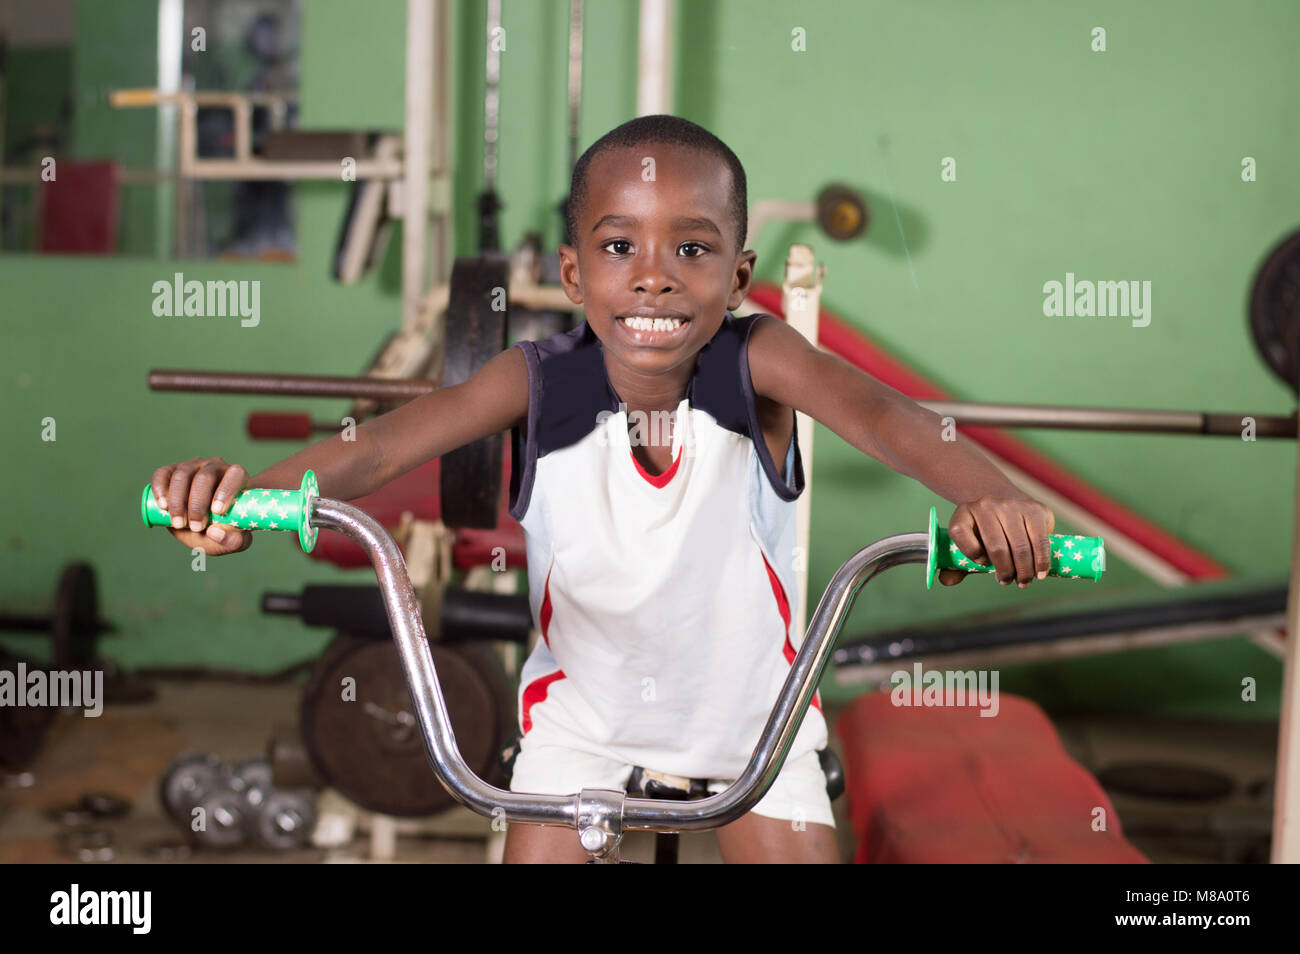 Smiling little boy trains on a bike to acquire fitness. - Stock Image